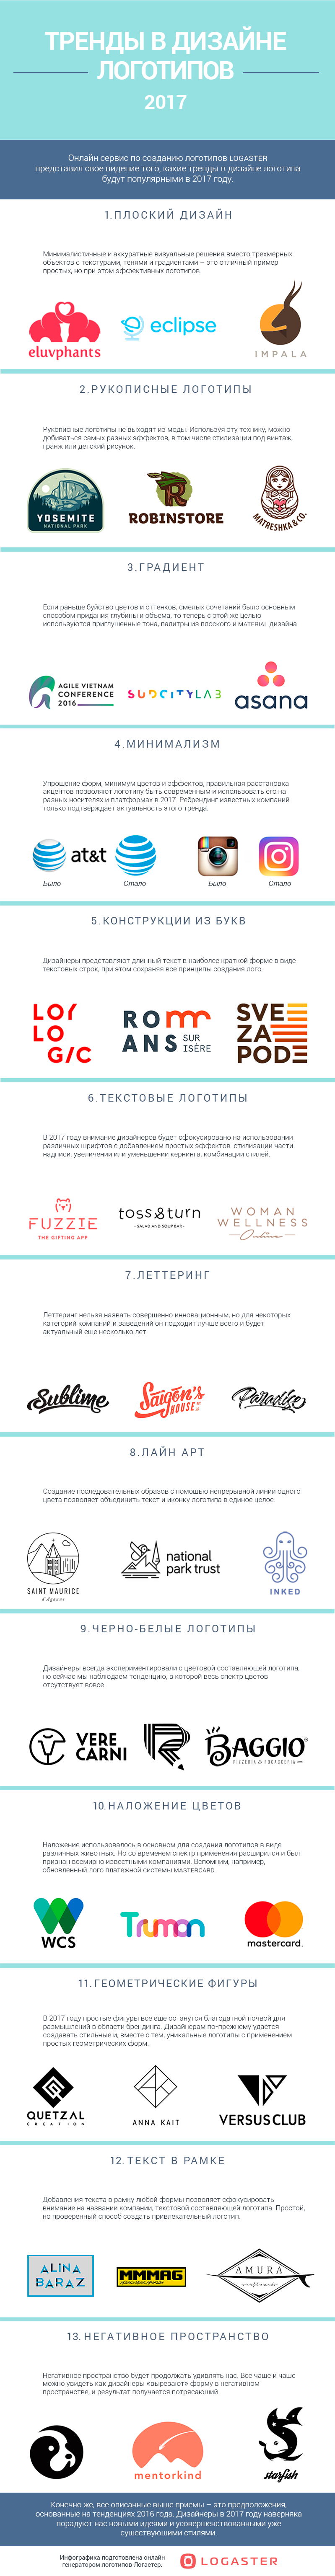 Trends in logo design color 2017